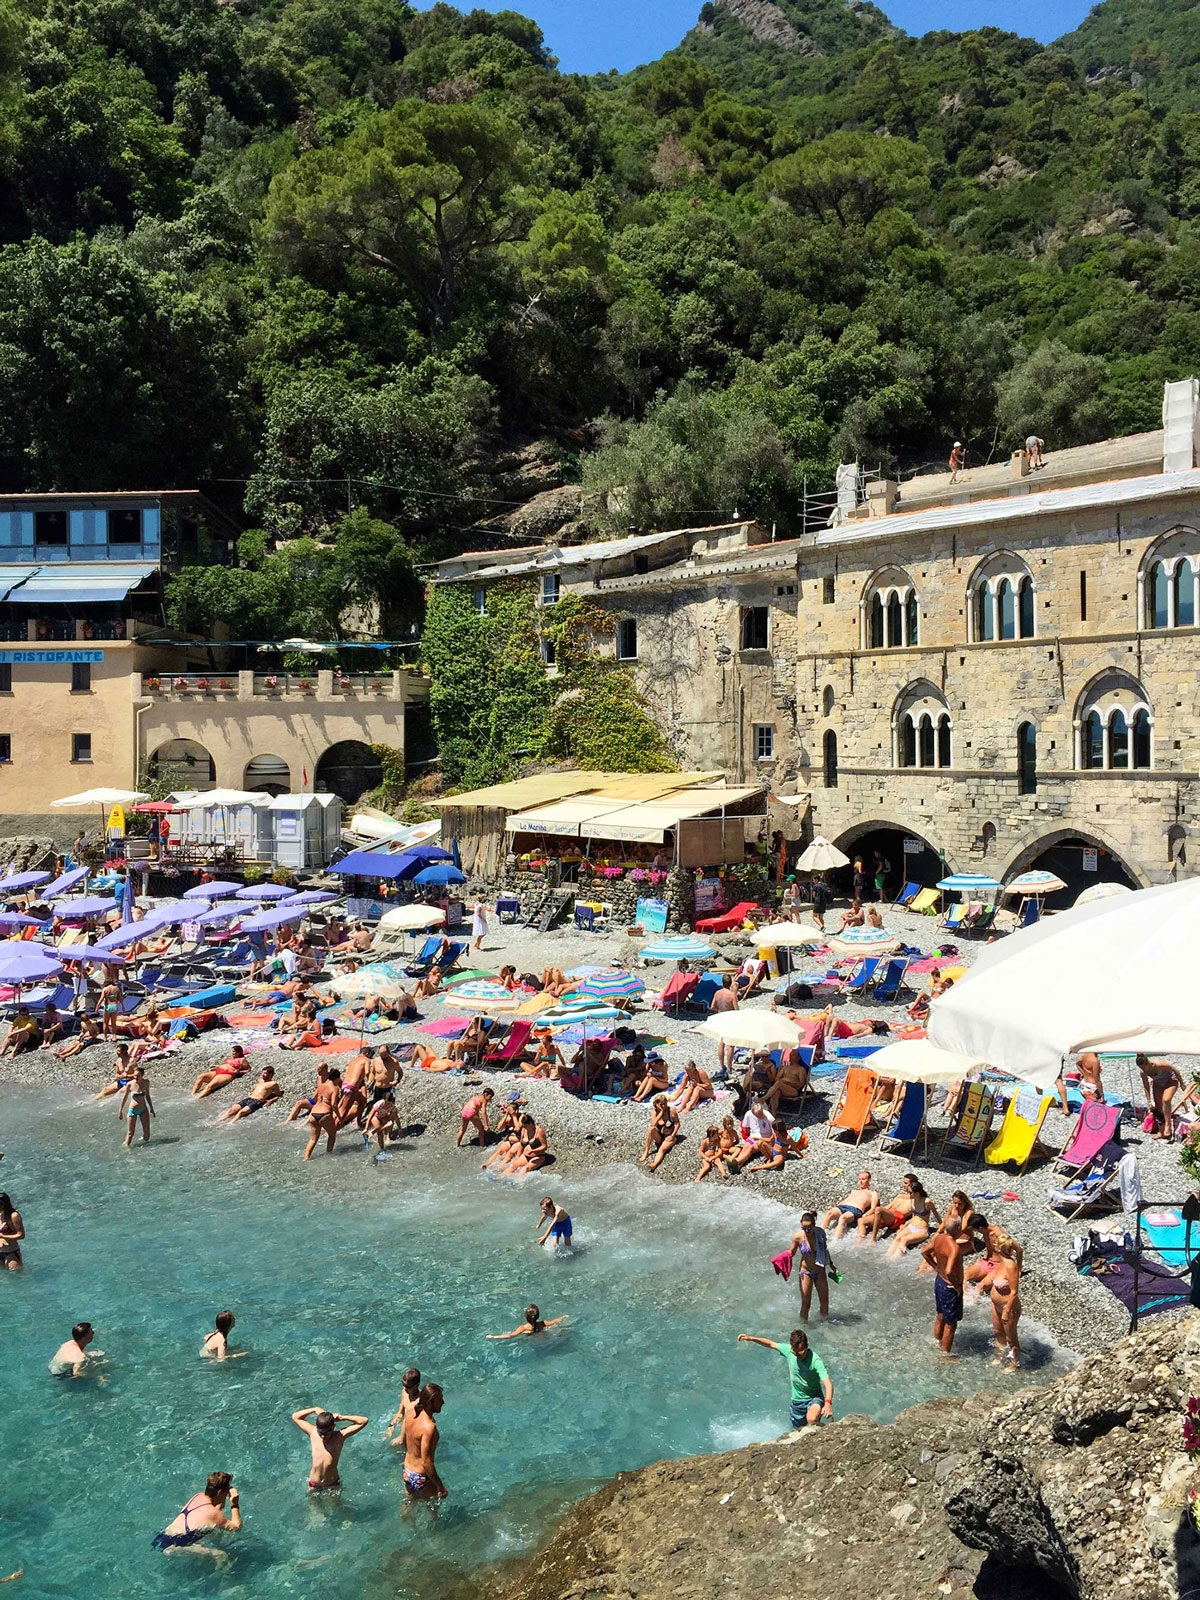 The small beach of San Fruttuoso is filled with beach umbrellas and people sunbathing, swimming and chatting